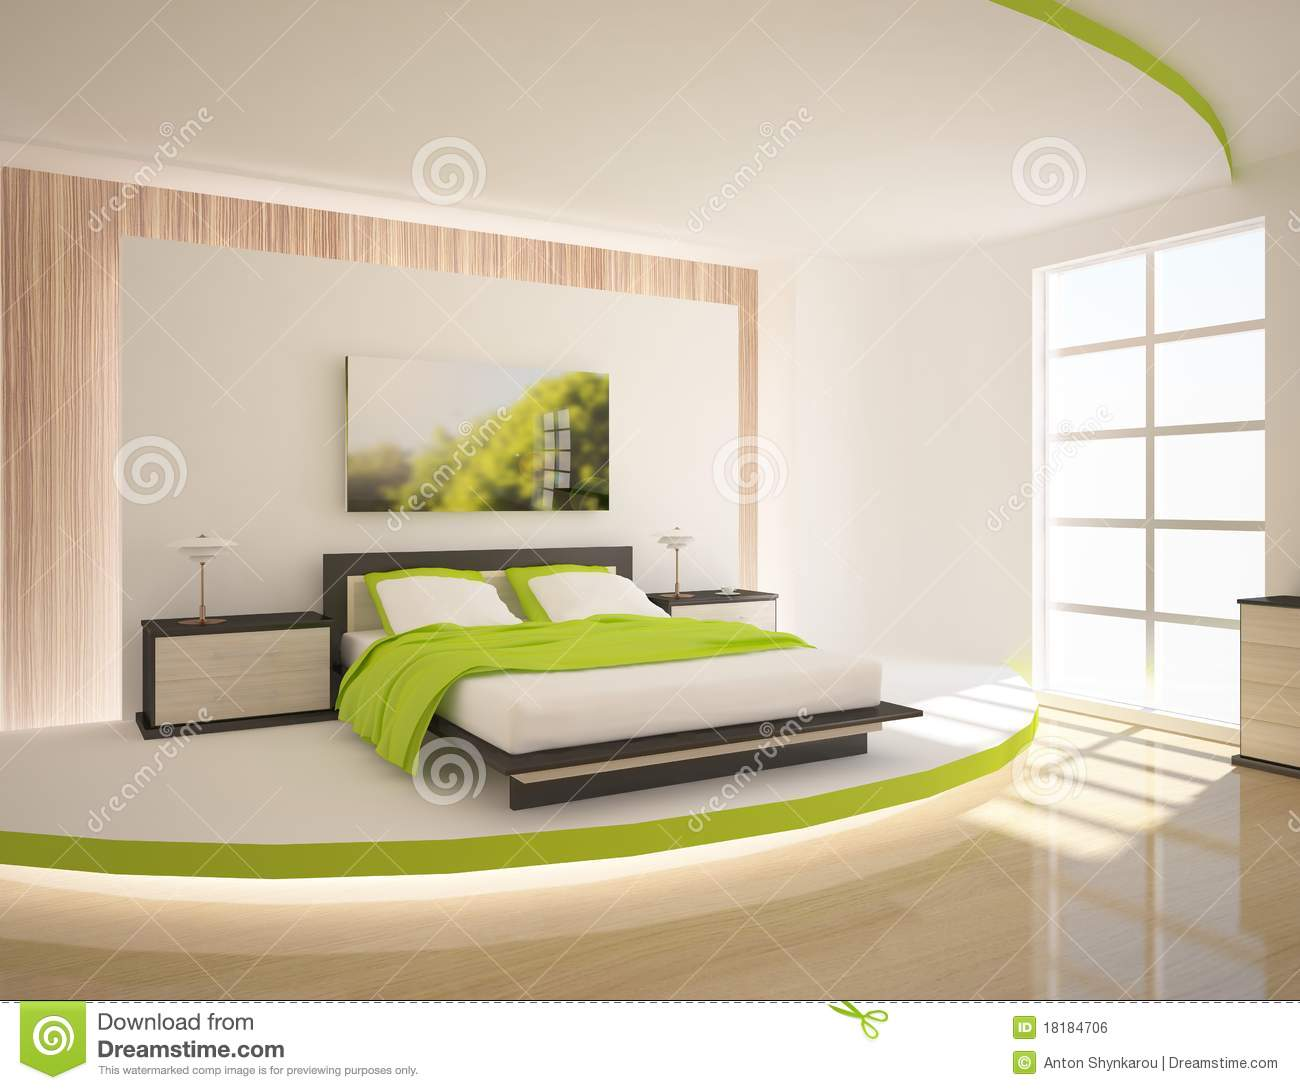 Vert Chambre Coucher : Beautiful vert chambre coucher gallery awesome interior